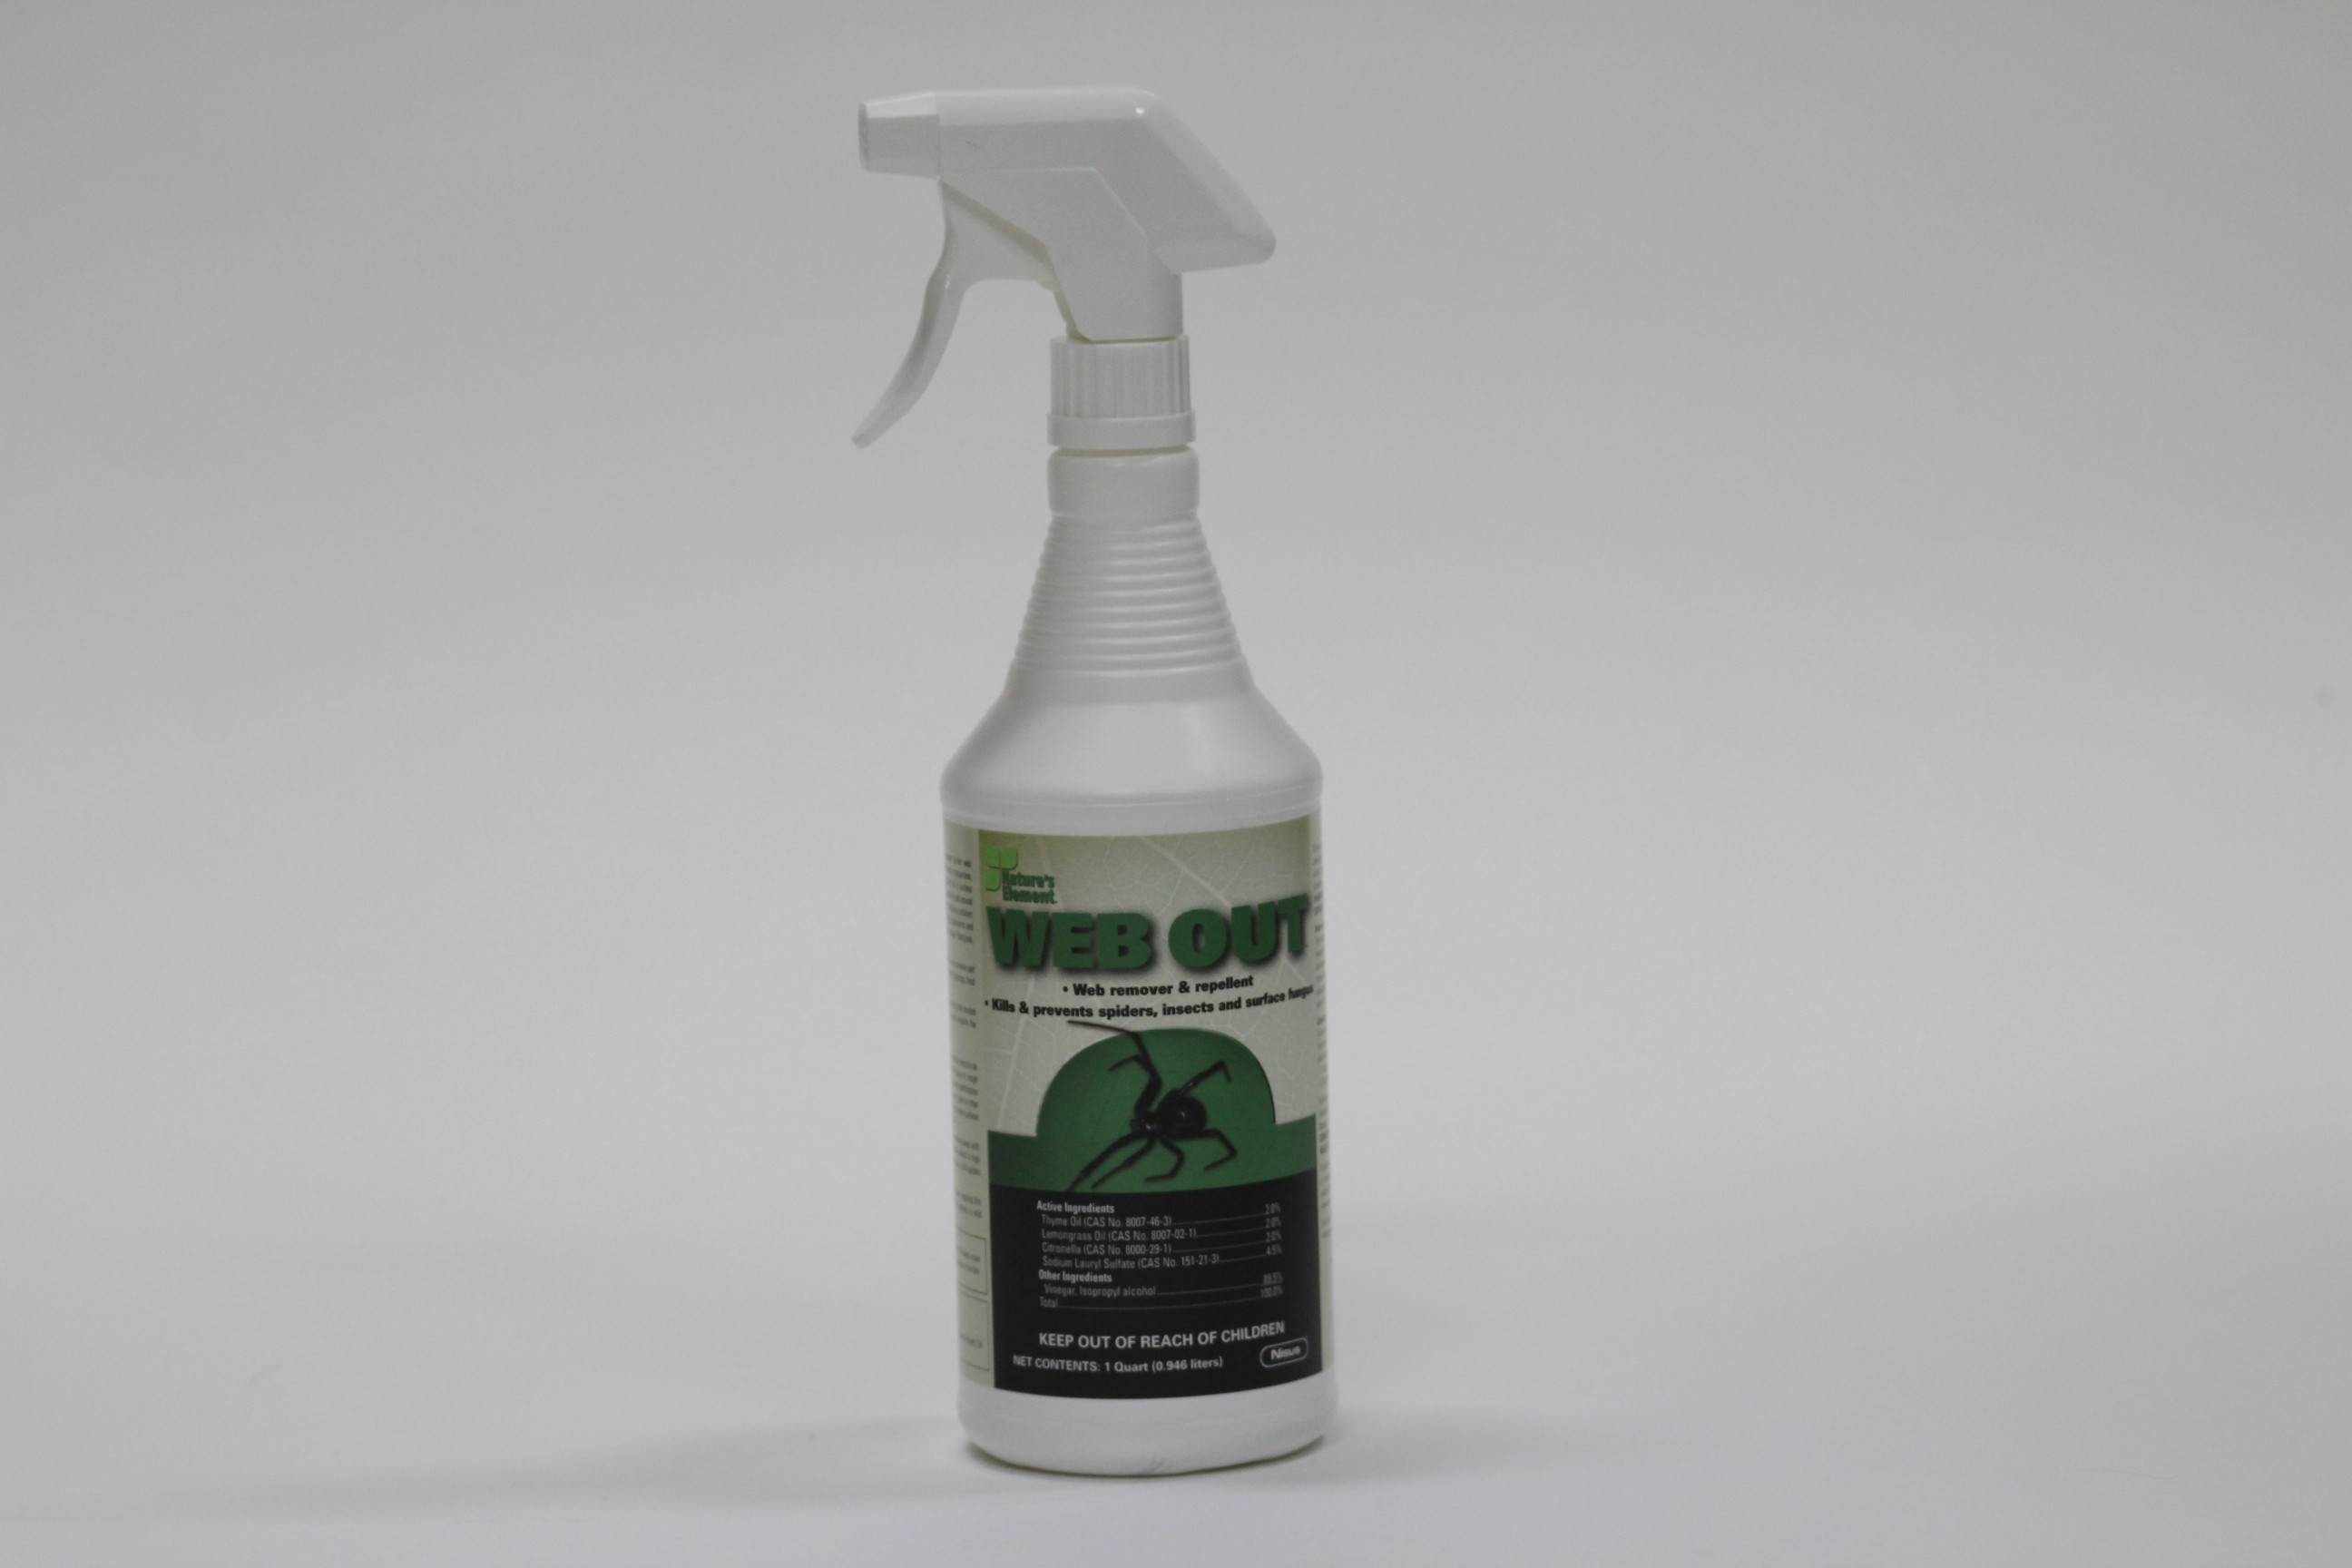 ant spray asda ant infestation in home winter spider spray for outside home how to kill a wasp. Black Bedroom Furniture Sets. Home Design Ideas